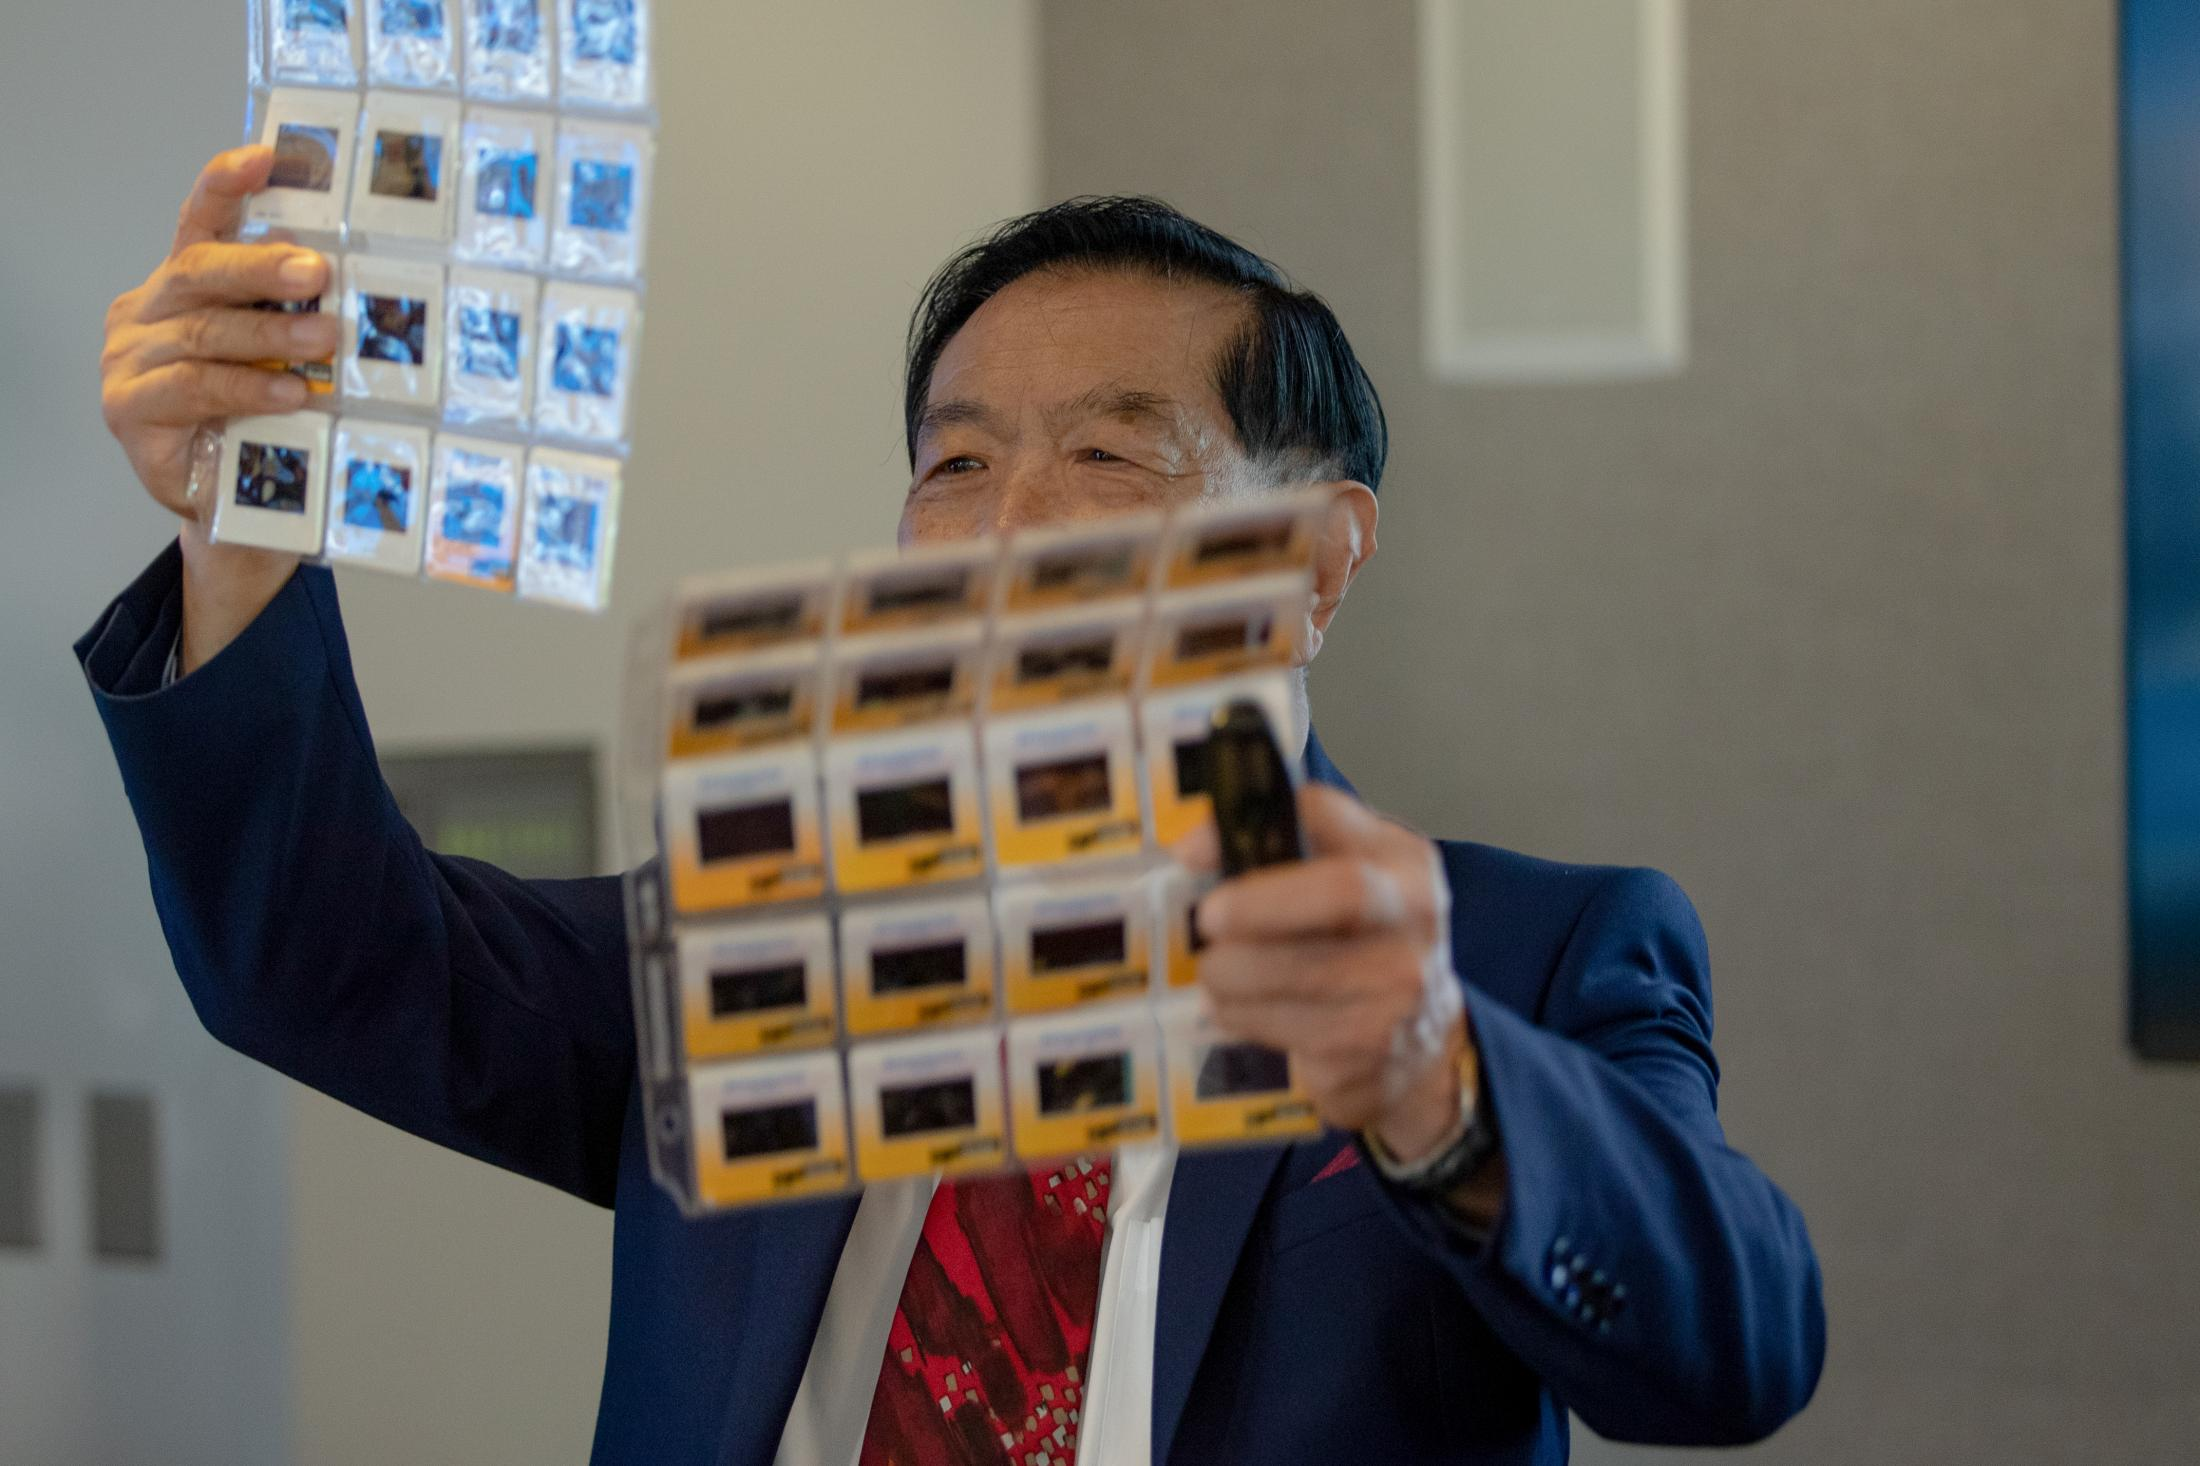 Dr. Henry Lee looks over crime scene photo slides that were handed to him after taking questions at a press conference at the University of New Haven in West Haven, CT on July 11, 2019, to defend his testimonies in court for cases that may have led to false convictions.